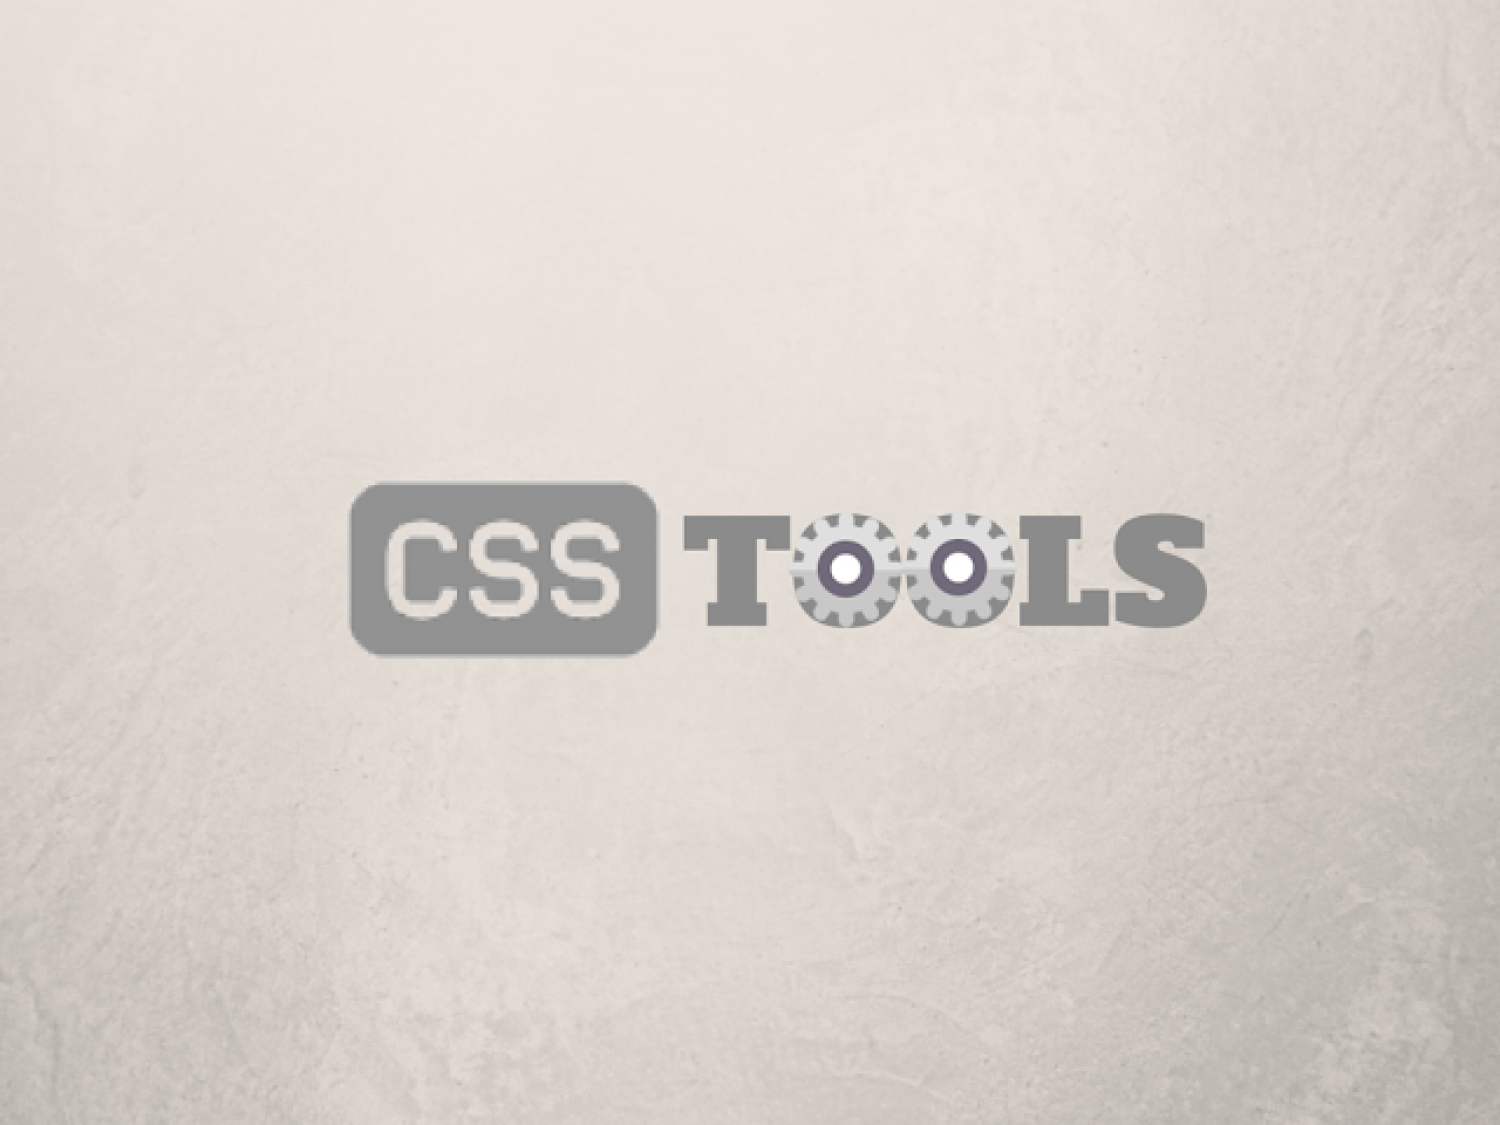 Awesome 25+ CSS Tools For Web Designers & Developers  Infographic